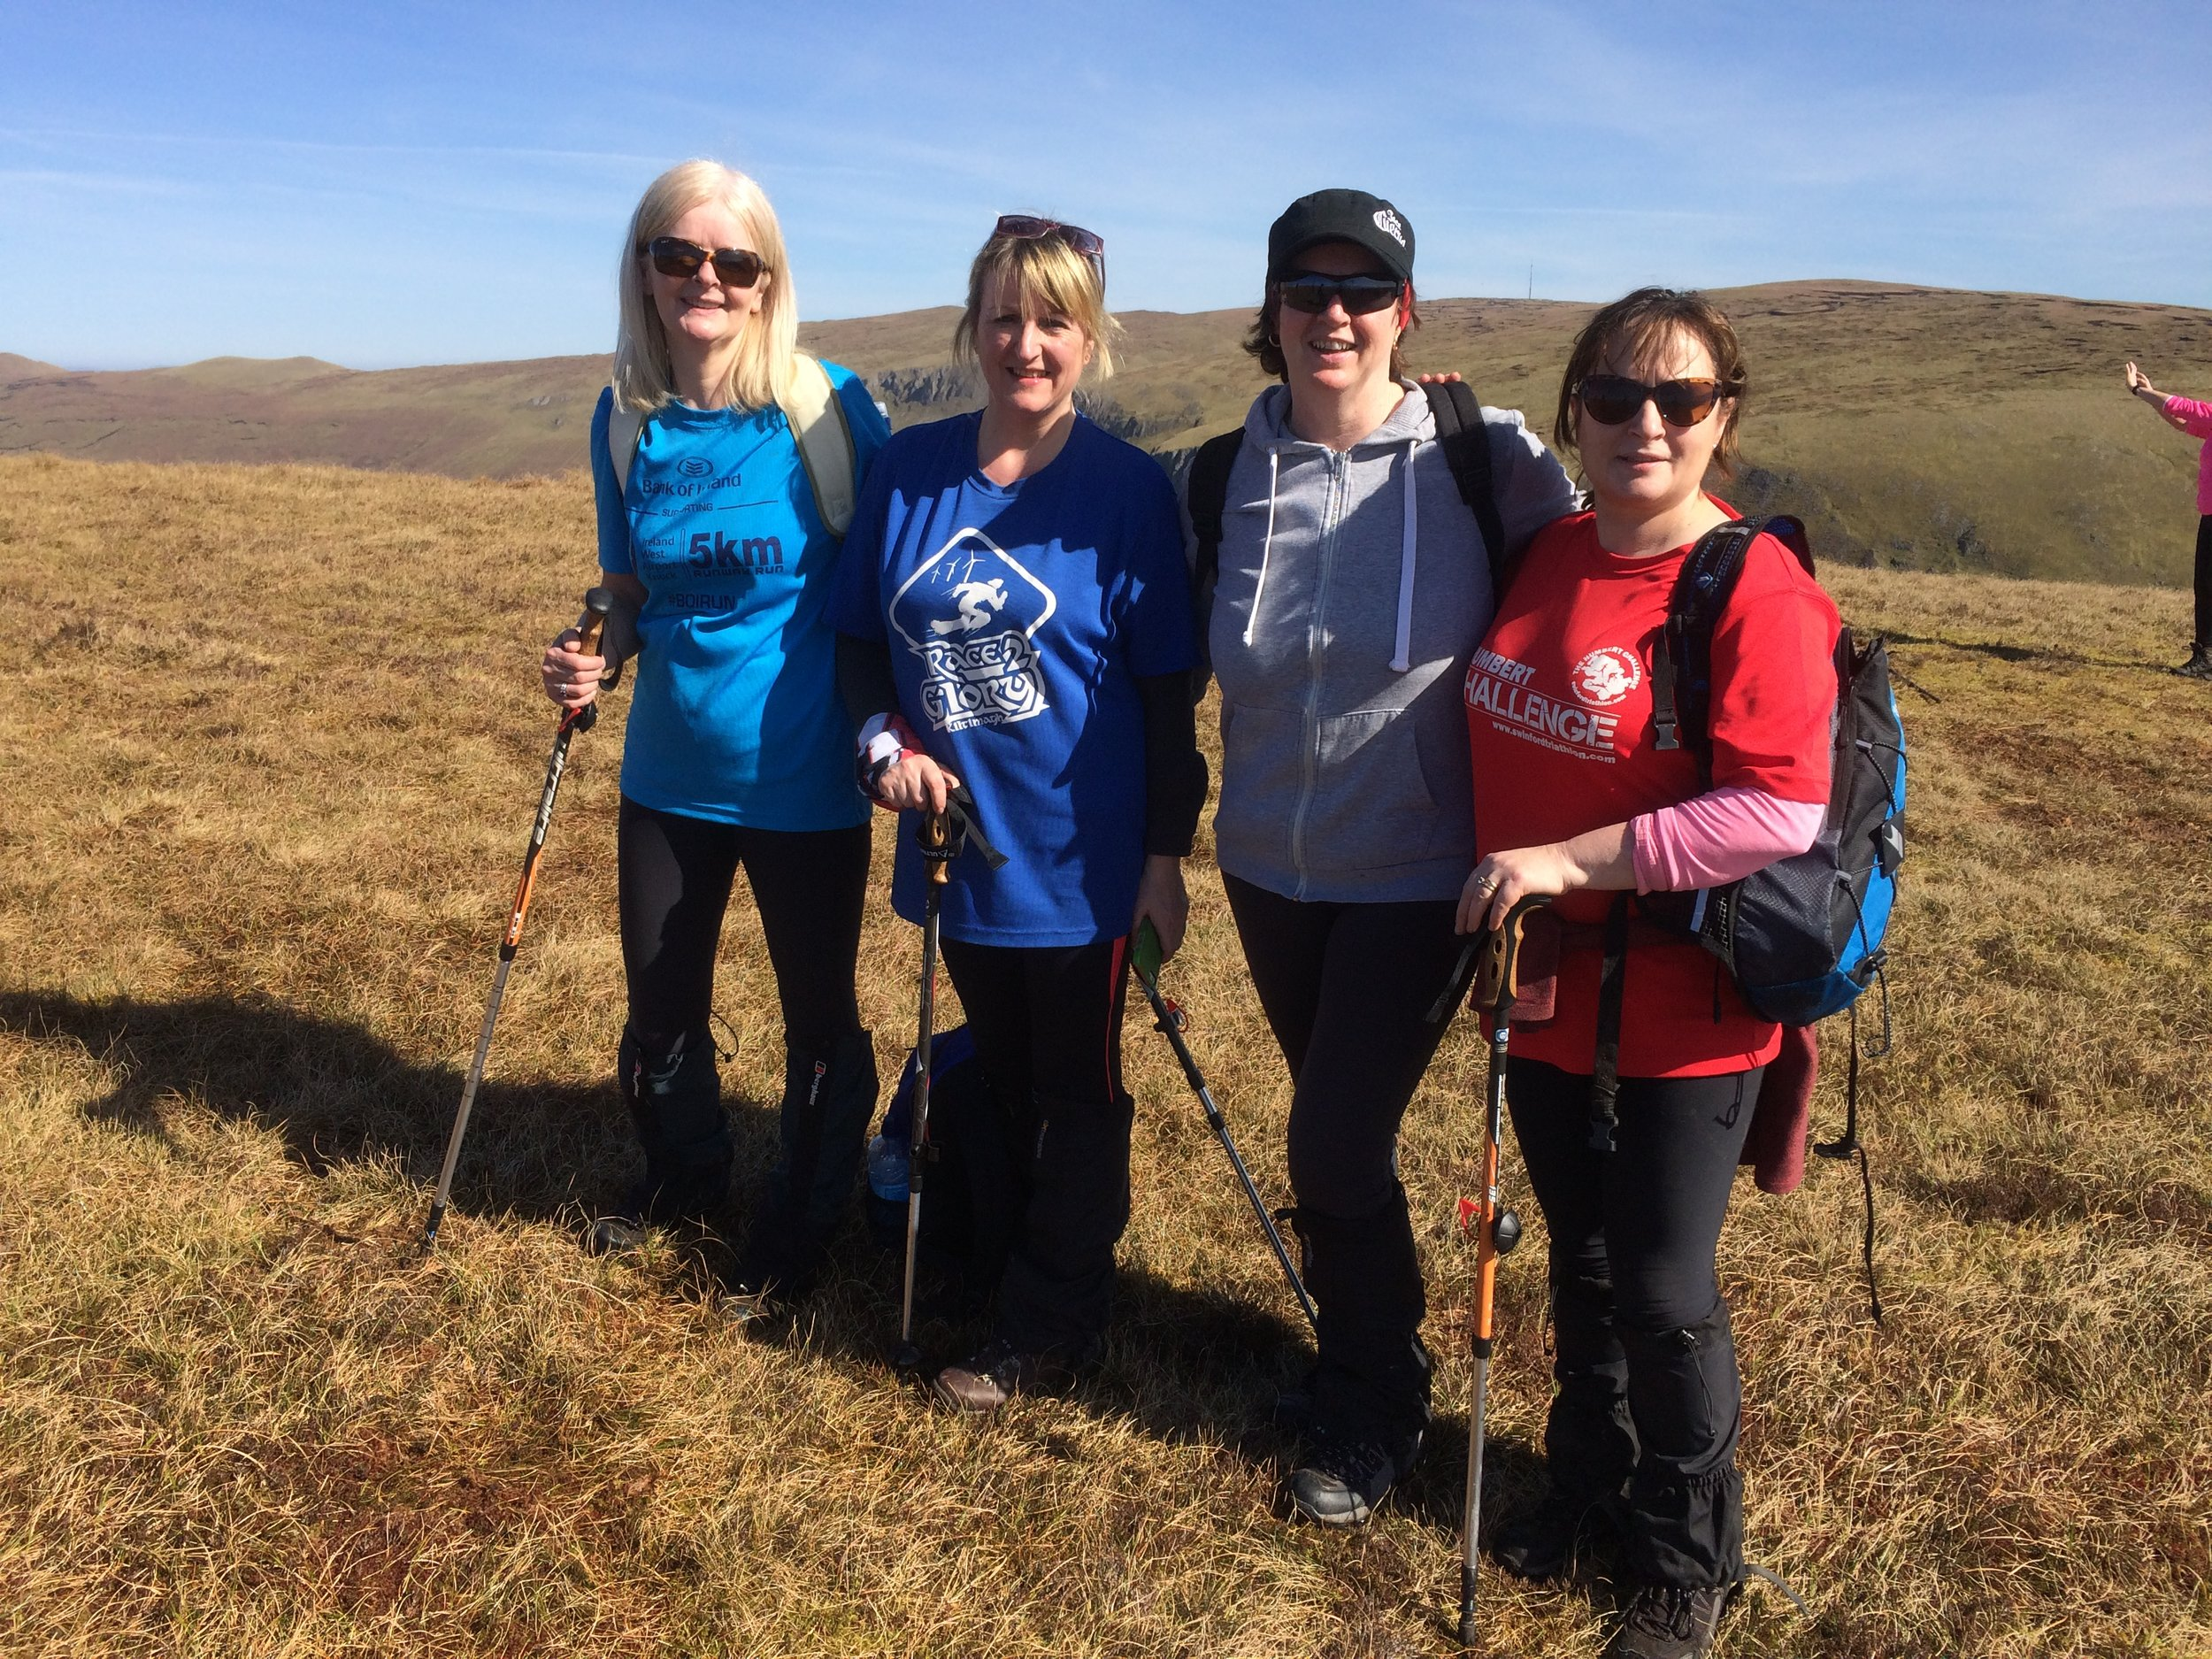 """Bernie Mary Martina and Therese enjoying success of having climbed Benbulben with High Hopes Hiking. Well done ladies. You sure took advantage of the """"window of opportunity"""""""